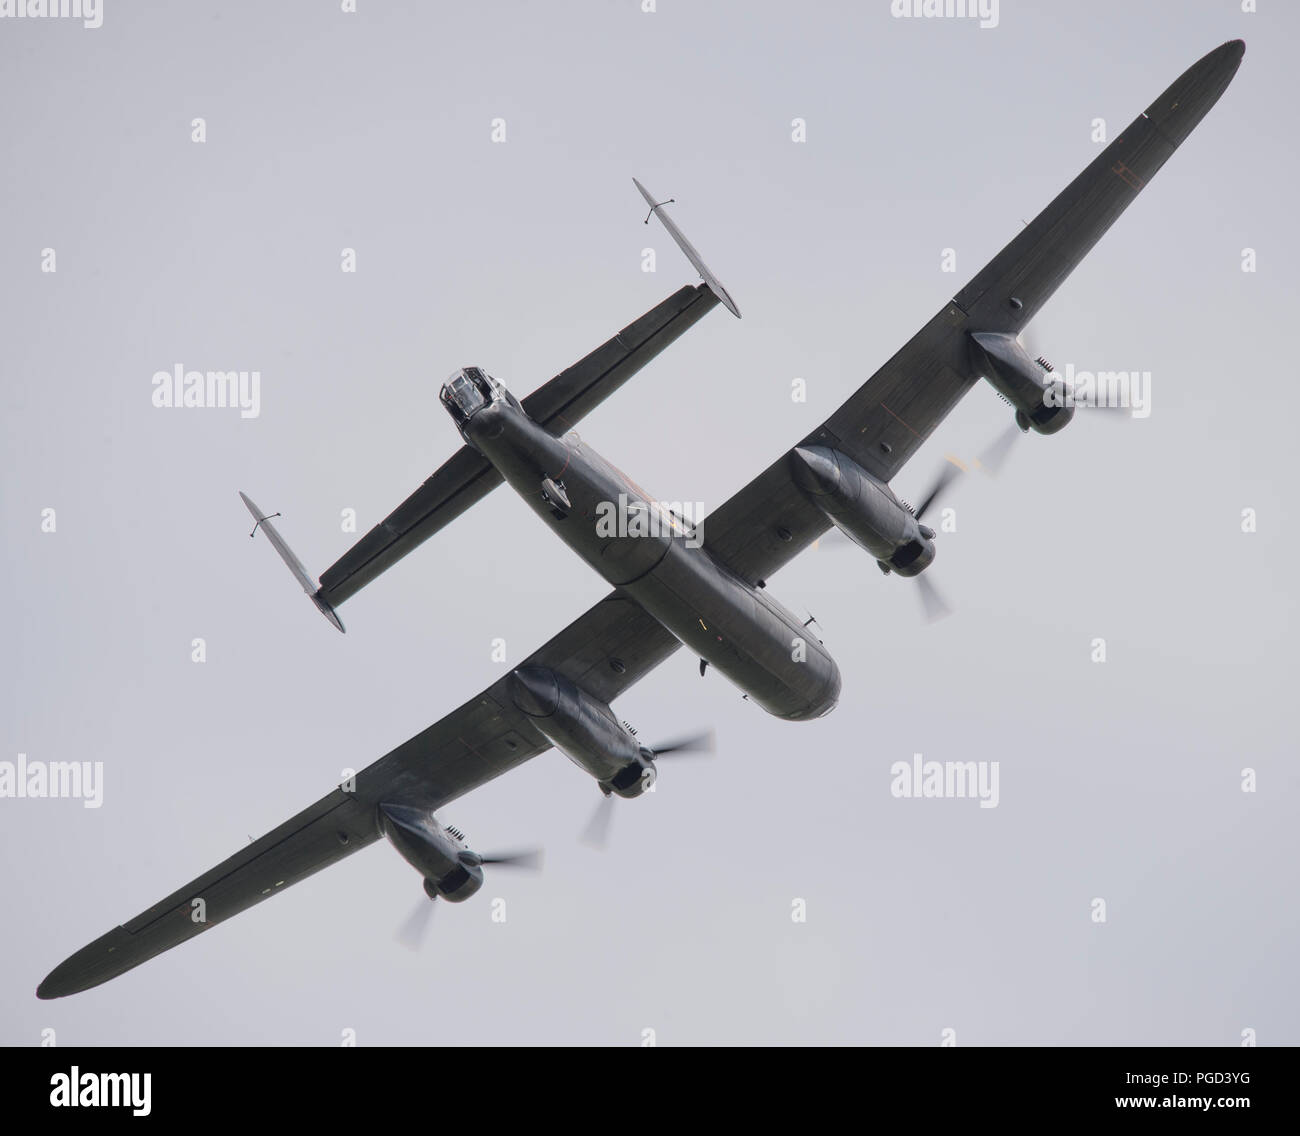 Dunsfold Park, Surrey, UK. 25 August, 2018. Weekend iconic aviation and motoring show at Dunsfold features flying displays and modern, classic & vintage supercars. Weather changes may curb may flying activities on Sunday 26 August as heavy rain is forecast. Credit: Malcolm Park/Alamy Live News. - Stock Image